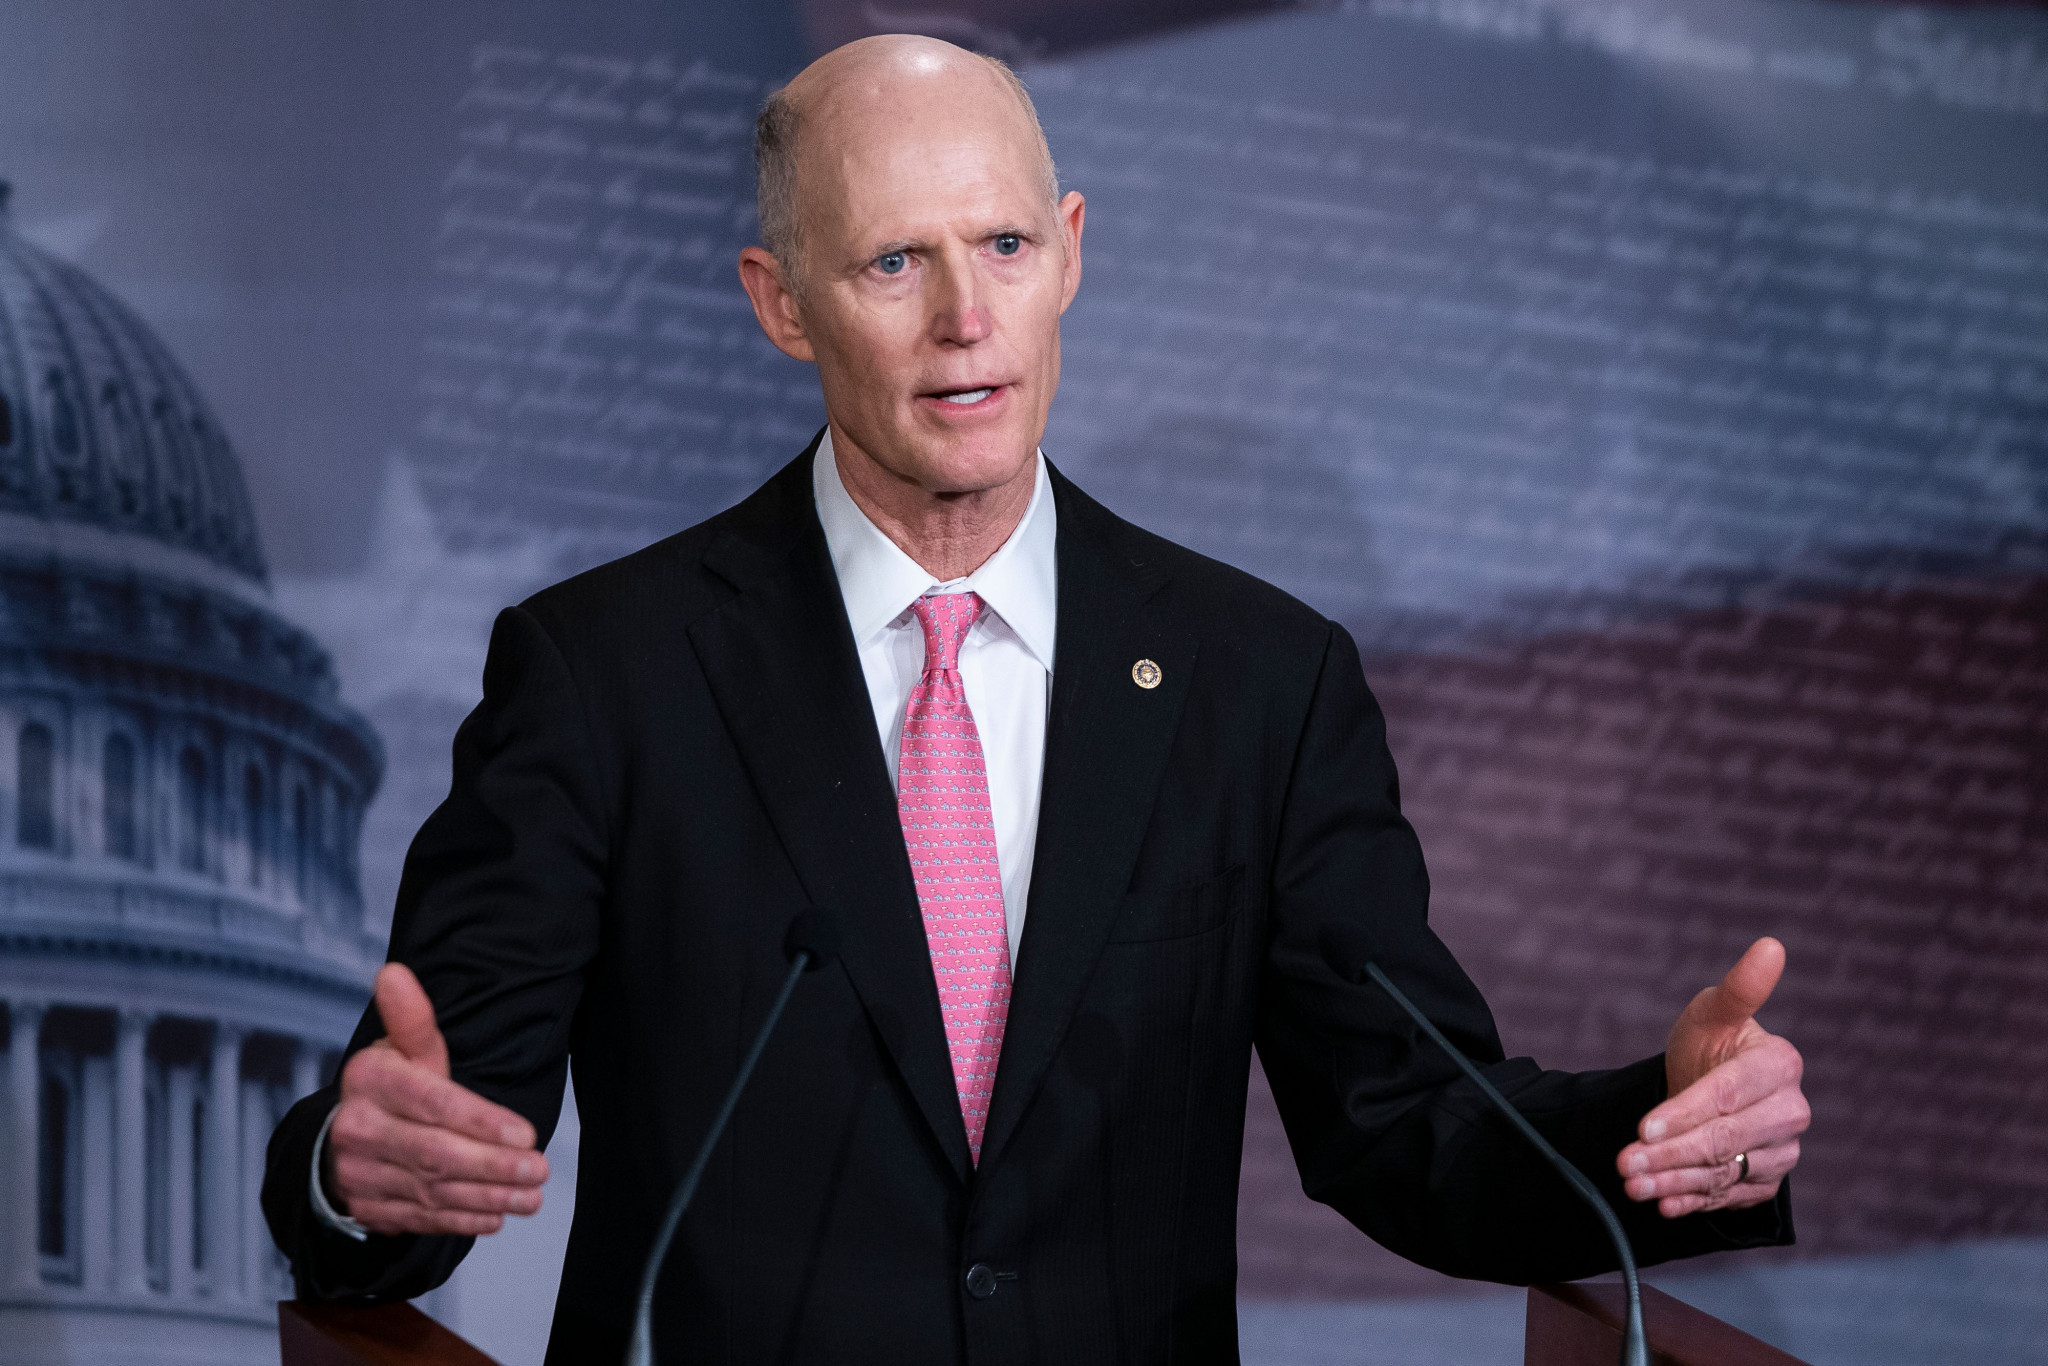 Florida Senator Rick Scott has requested a meeting with IOC President Thomas Bach to discuss Beijing 2022 ©Getty Images